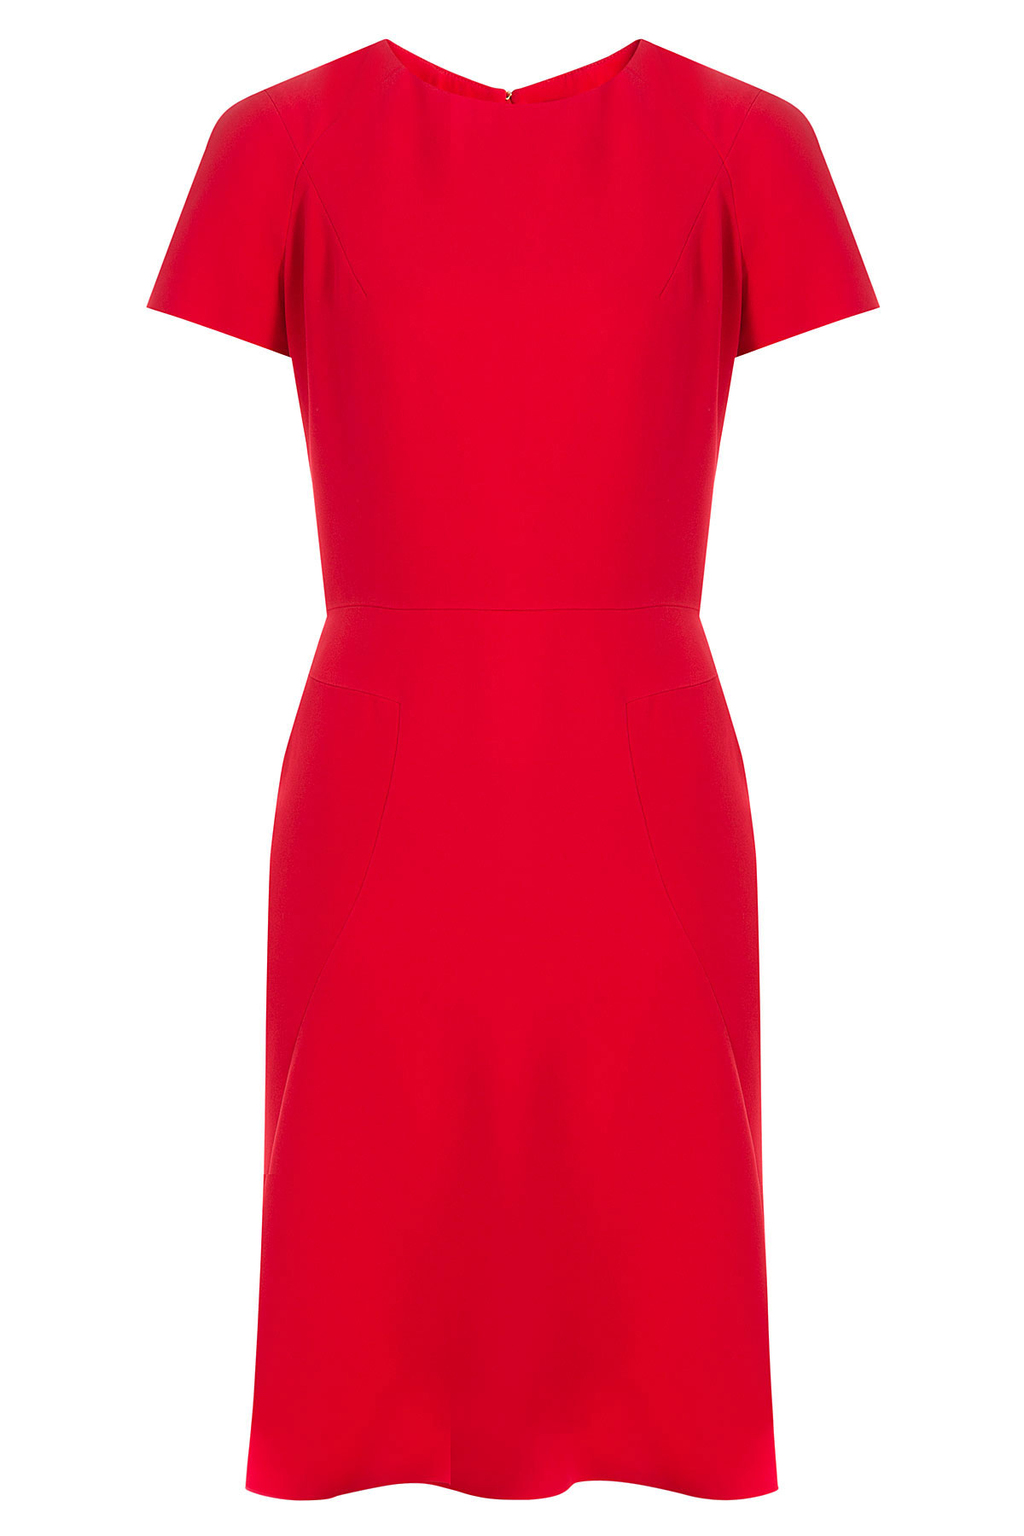 Tailored Dress - pattern: plain; predominant colour: true red; occasions: evening; length: on the knee; fit: fitted at waist & bust; style: fit & flare; fibres: viscose/rayon - 100%; neckline: crew; sleeve length: short sleeve; sleeve style: standard; pattern type: fabric; texture group: other - light to midweight; season: a/w 2016; wardrobe: event